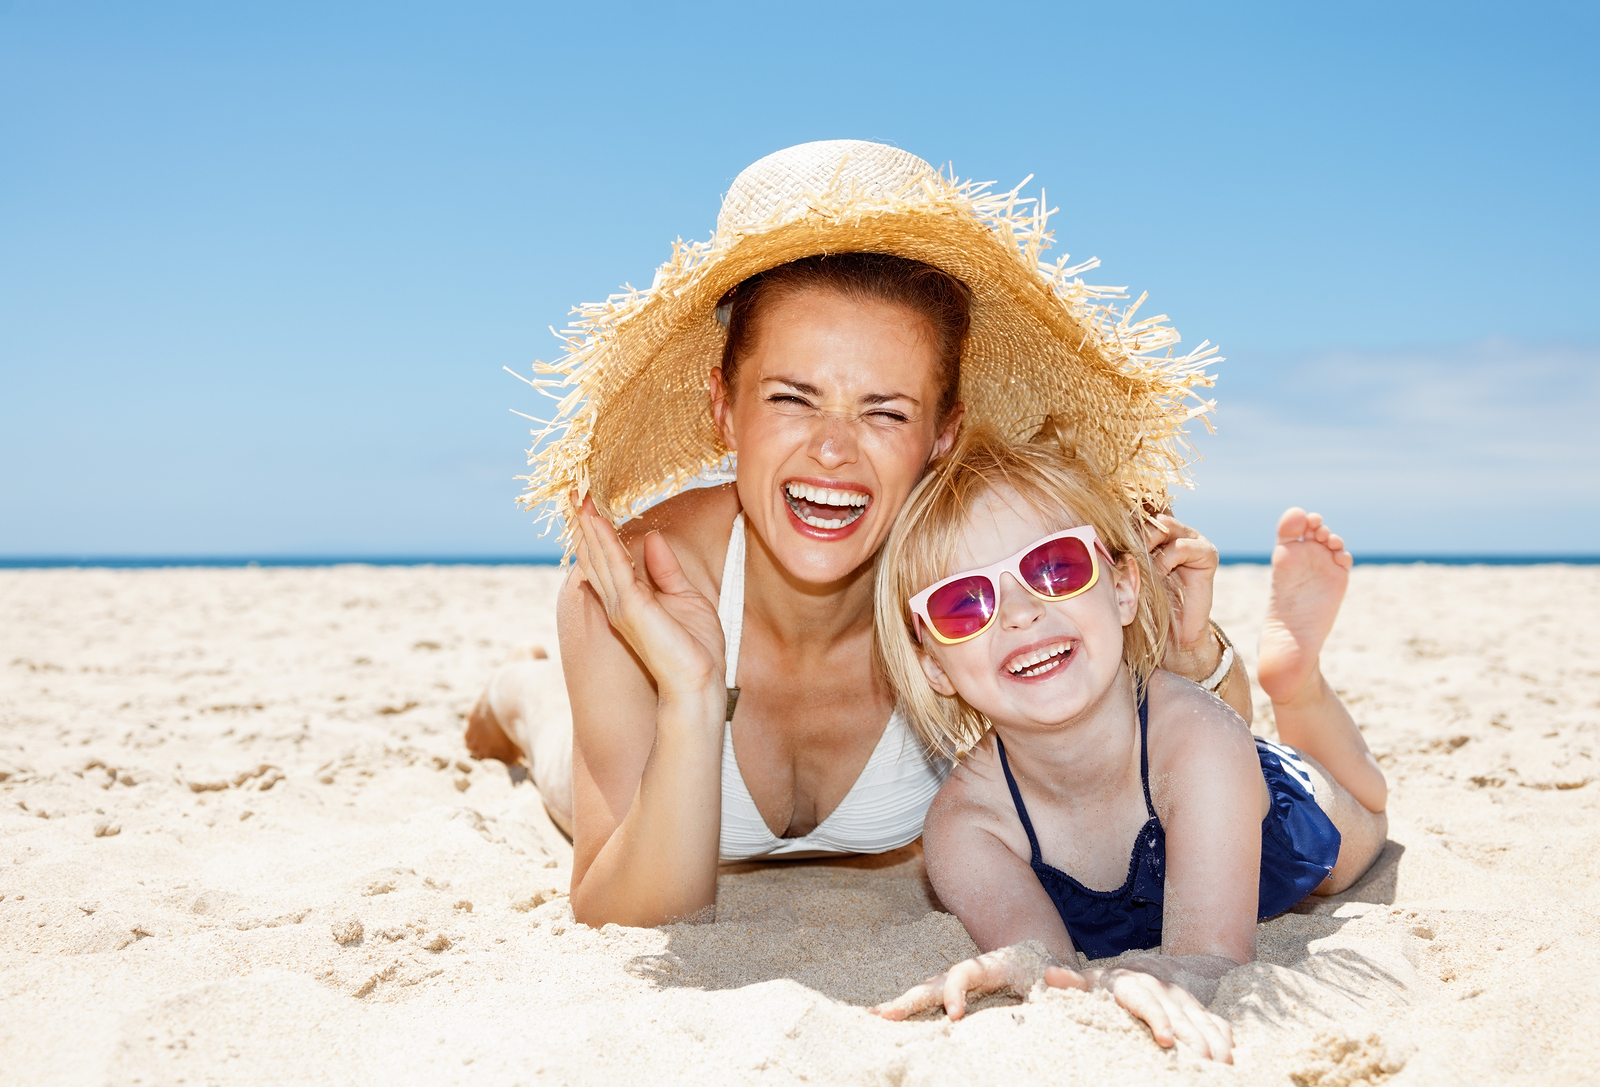 Ask The Expert: What Makes A Good Natural Sunscreen?